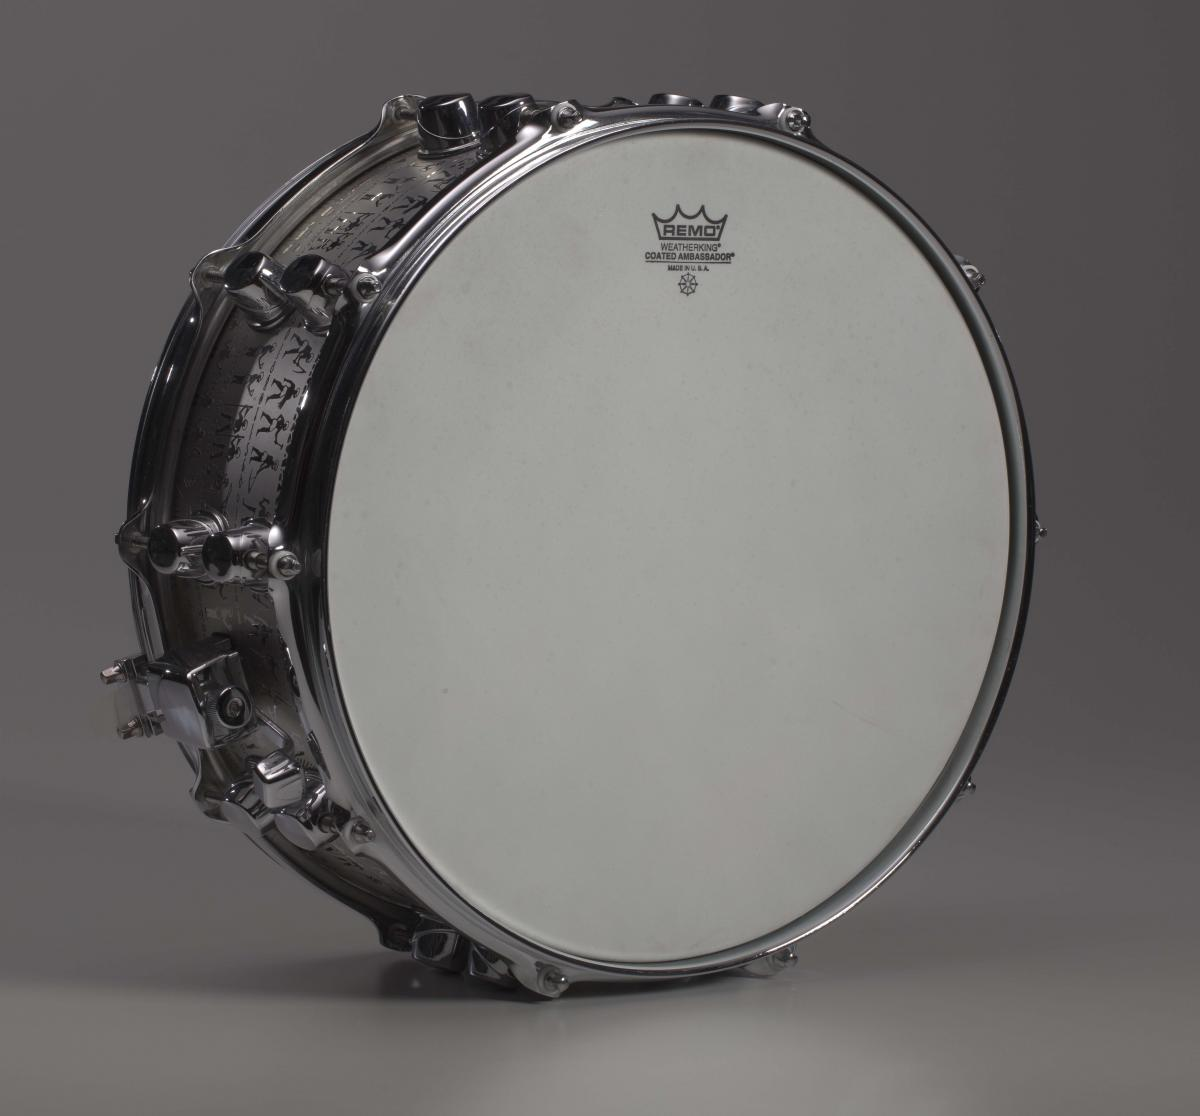 Custom Mapex black panther snare drum owned by Will Calhoun, 2005, Collection of the Smithsonian National Museum of African American History and Culture, Gift of Will Calhoun